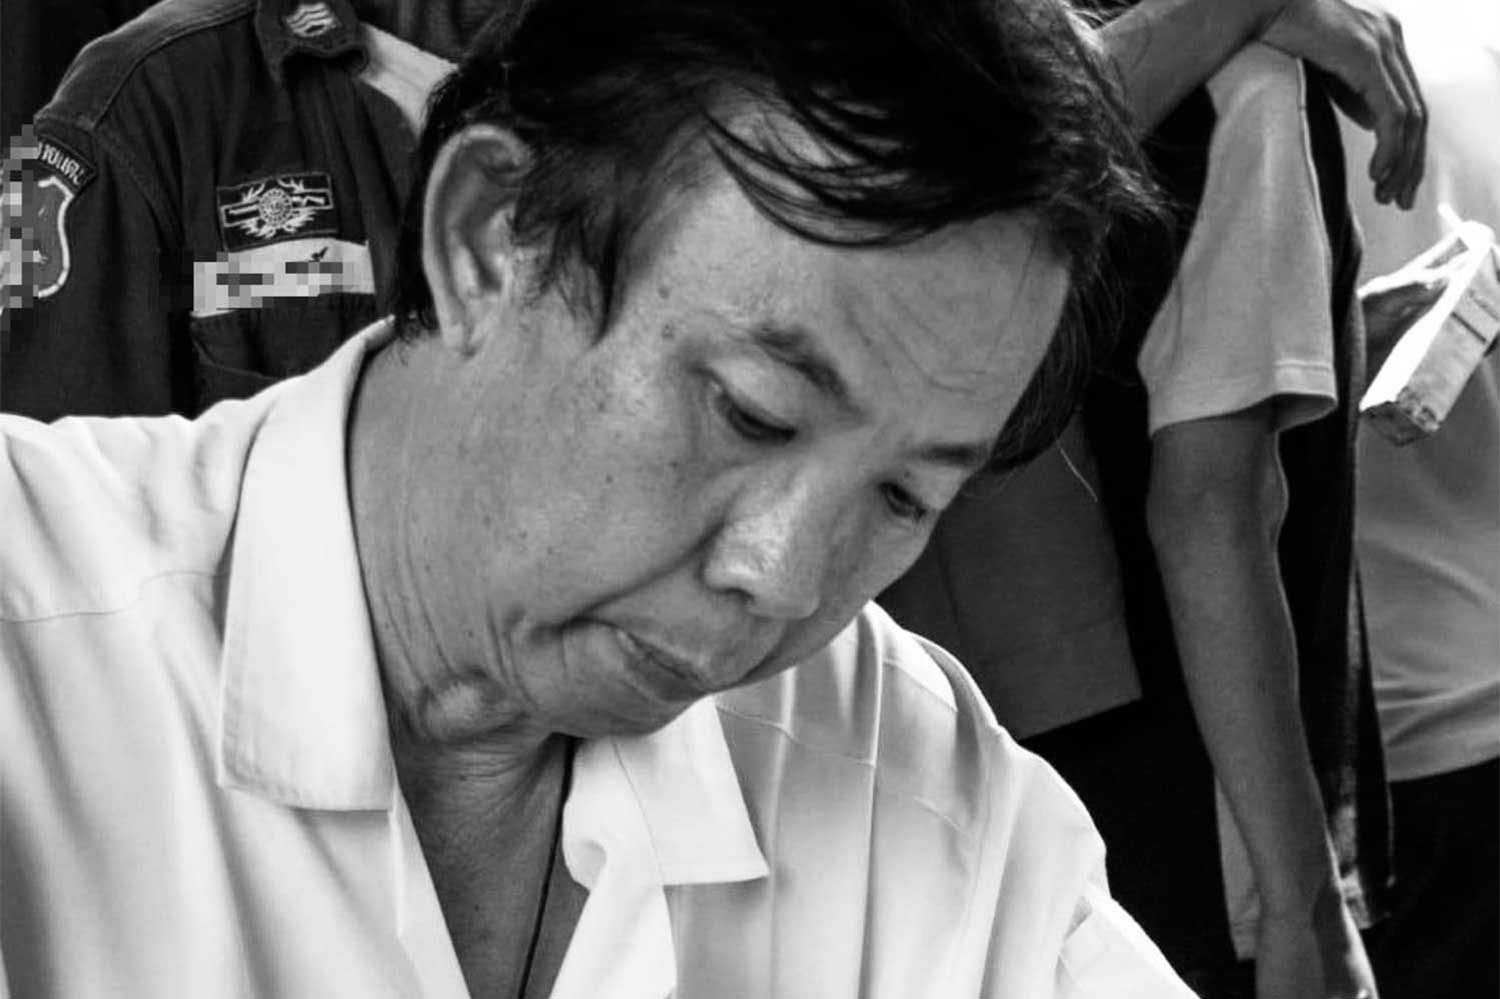 Dr Panya Hanphanitphan, 66, of Maha Sarakham province, died early on Thursday morning  from a Covid-19 infection. He was the first Thai physician killed by the disease. (Photo: from @jangkhao.sarakham Facebook page)